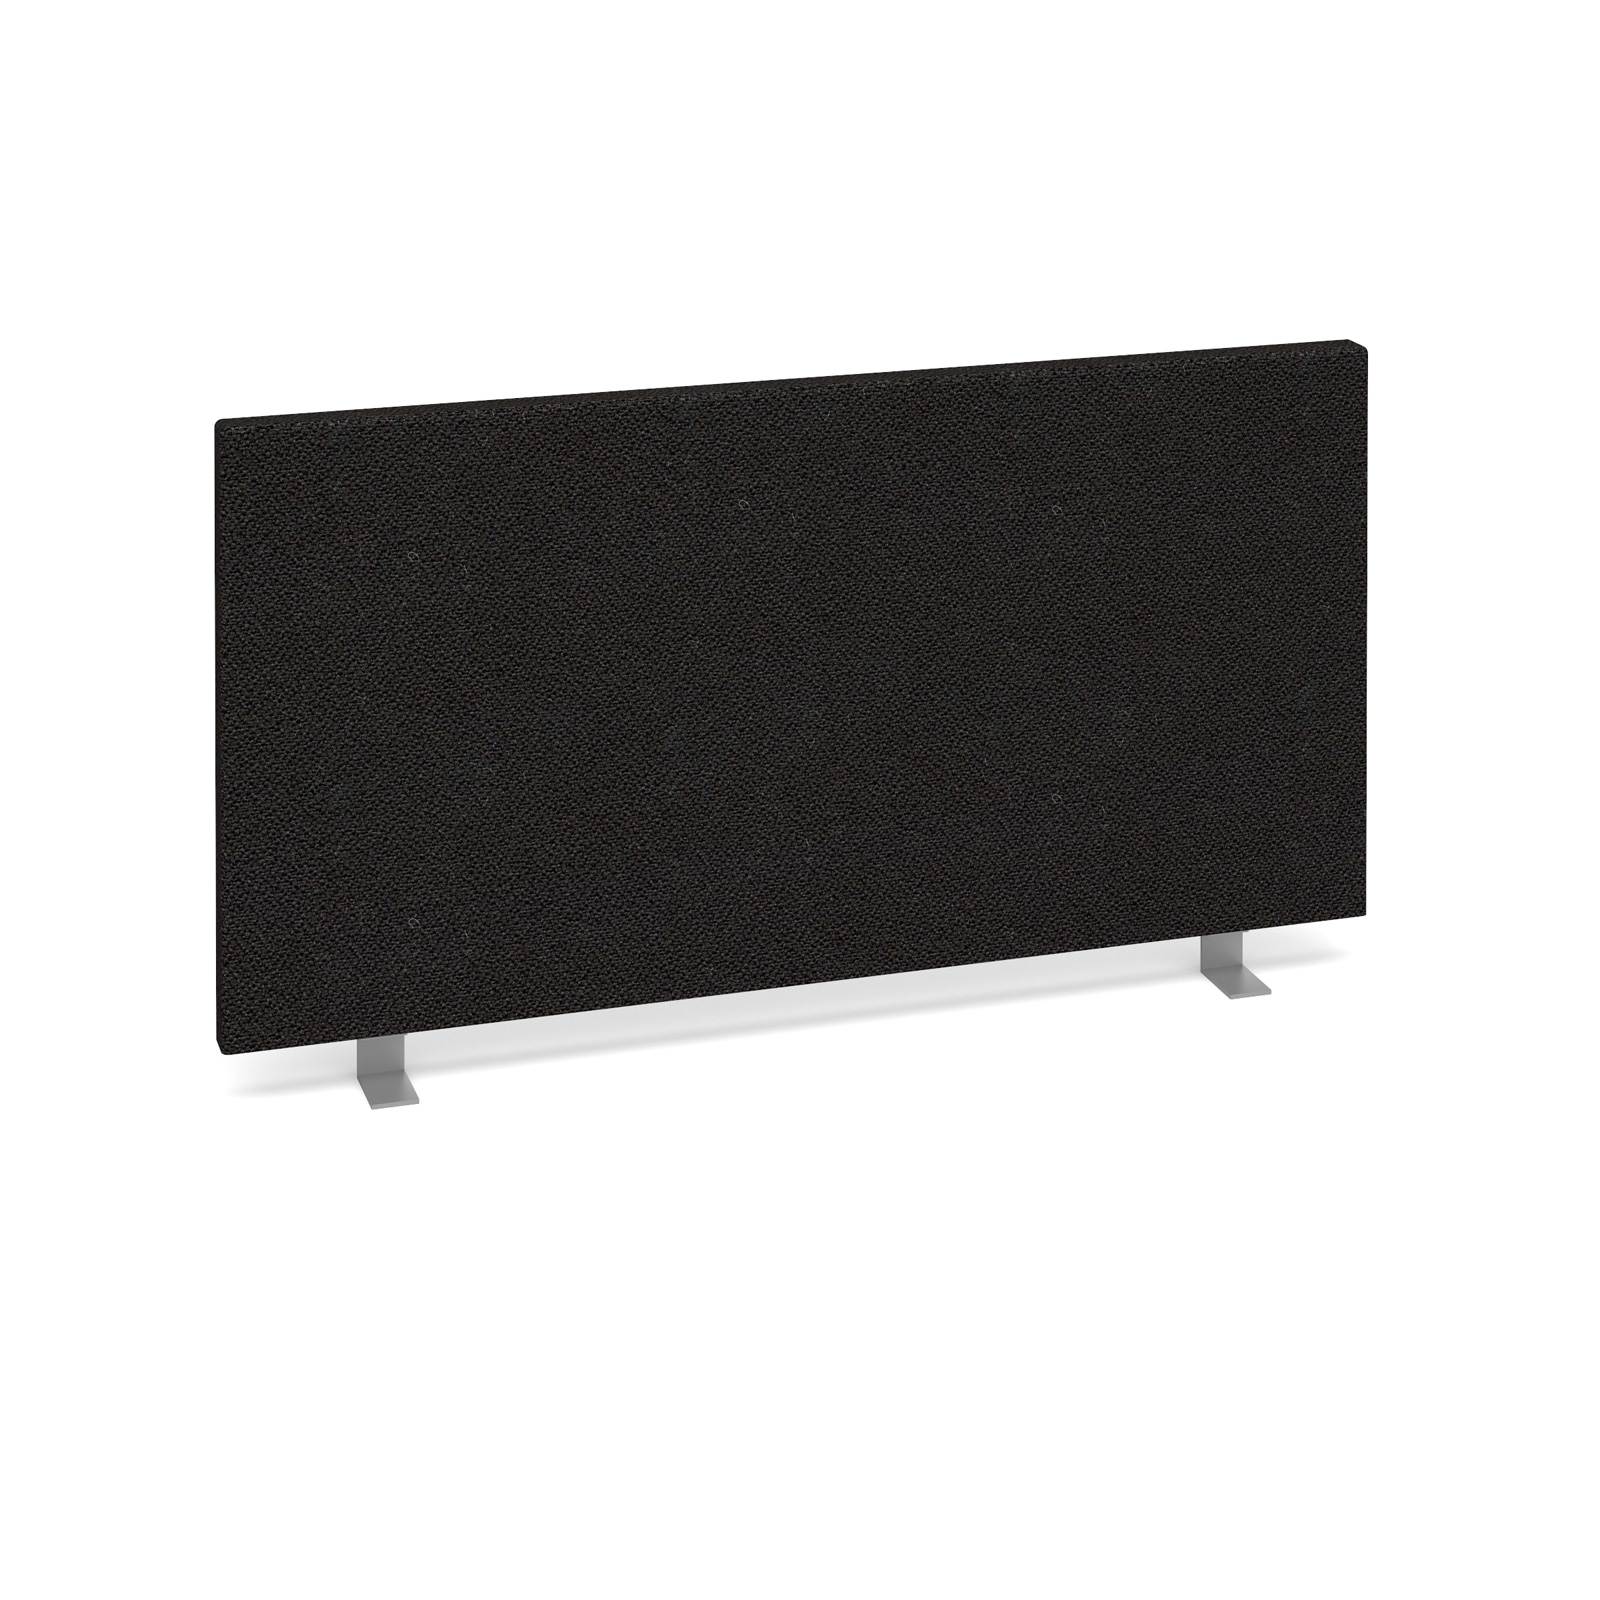 Straight Tops Straight desktop fabric screen 800mm x 400mm - charcoal